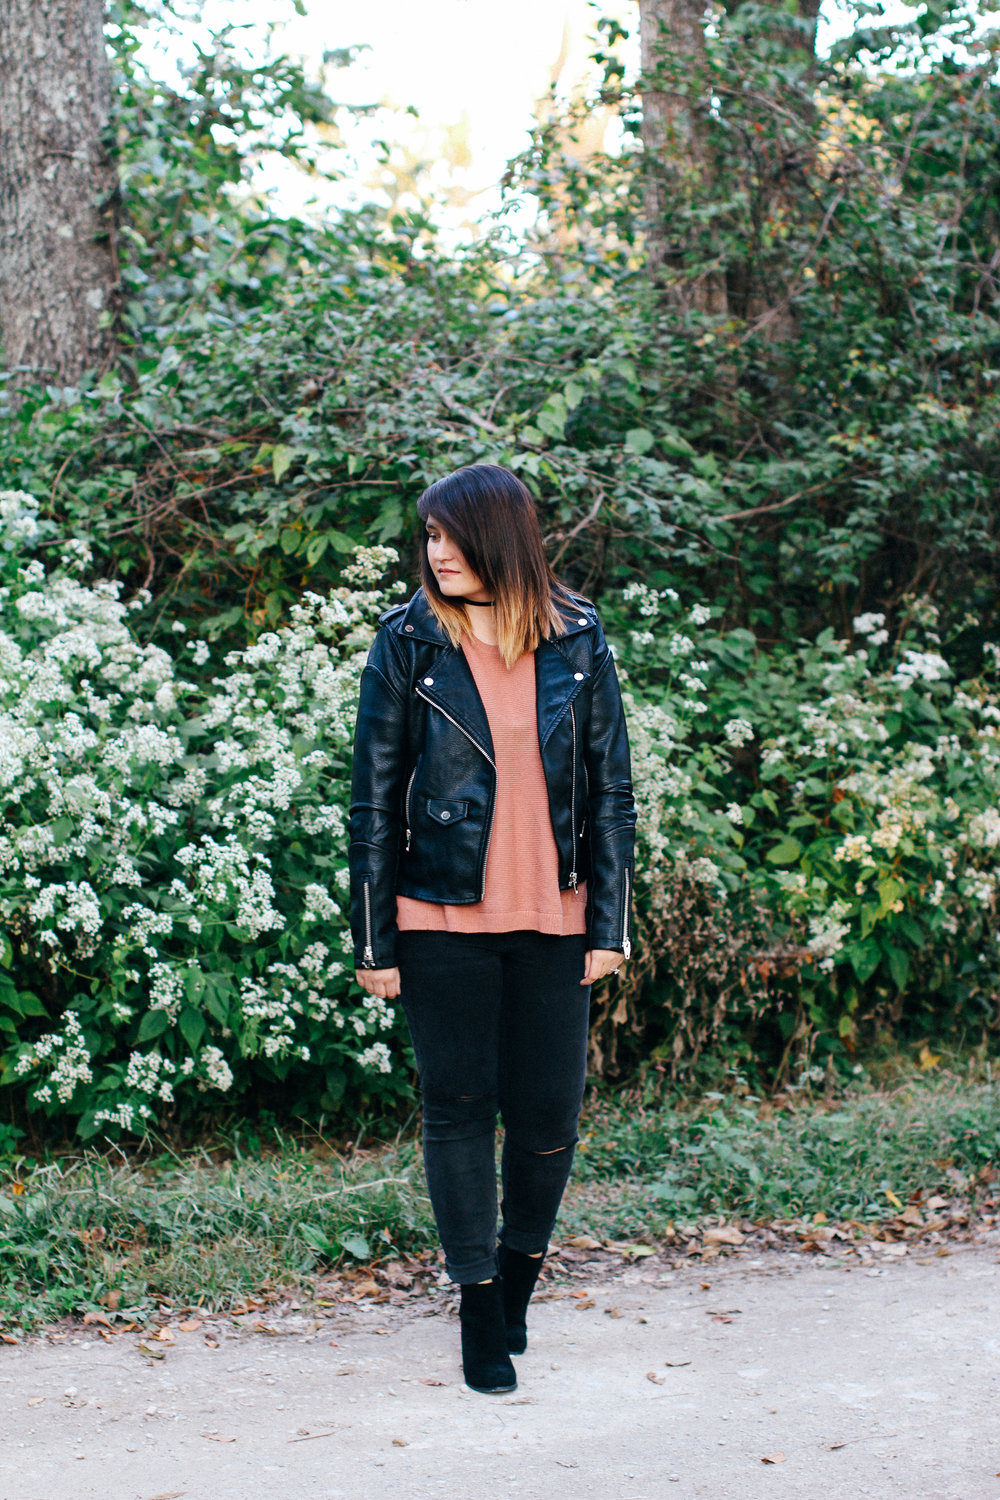 Leather + Blush ft @urbanoutfitters @nordstrom @madewell via chelceytate.com